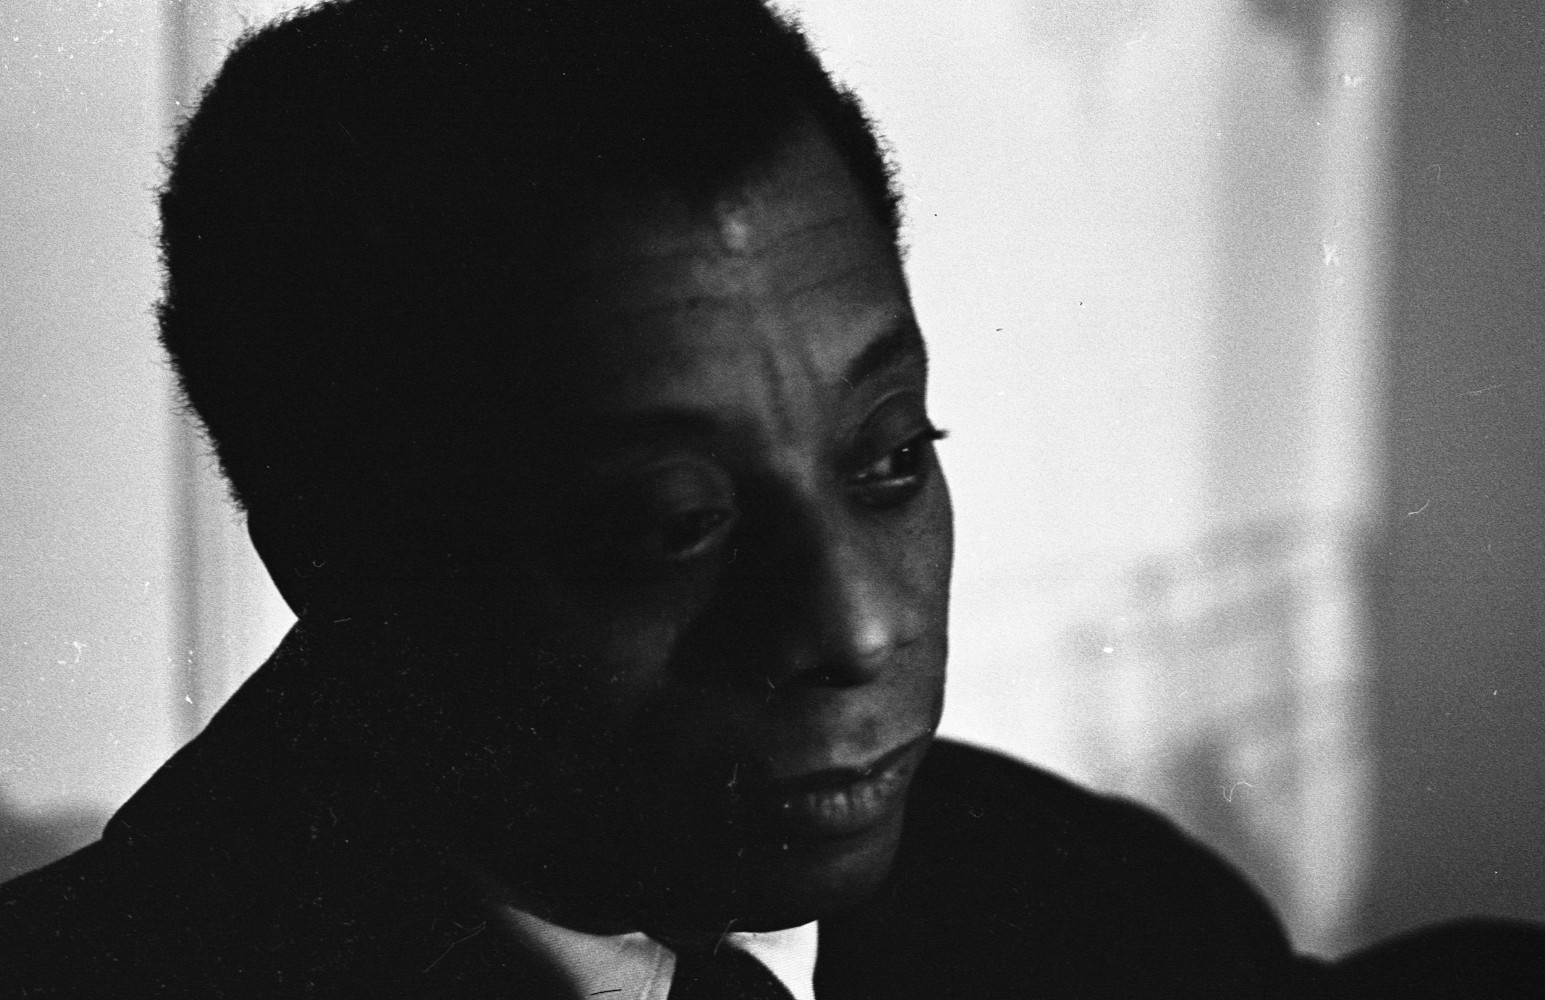 a comparison of james baldwin and malcolm x the activists Free essay: comparing malcolm x and martin luther king during the twentieth   such as, malcolm x, james baldwin, martin luther king, marcus garvey, some  had  of civil rights activists dr martin luther king, jr and malcolm x dr martin .